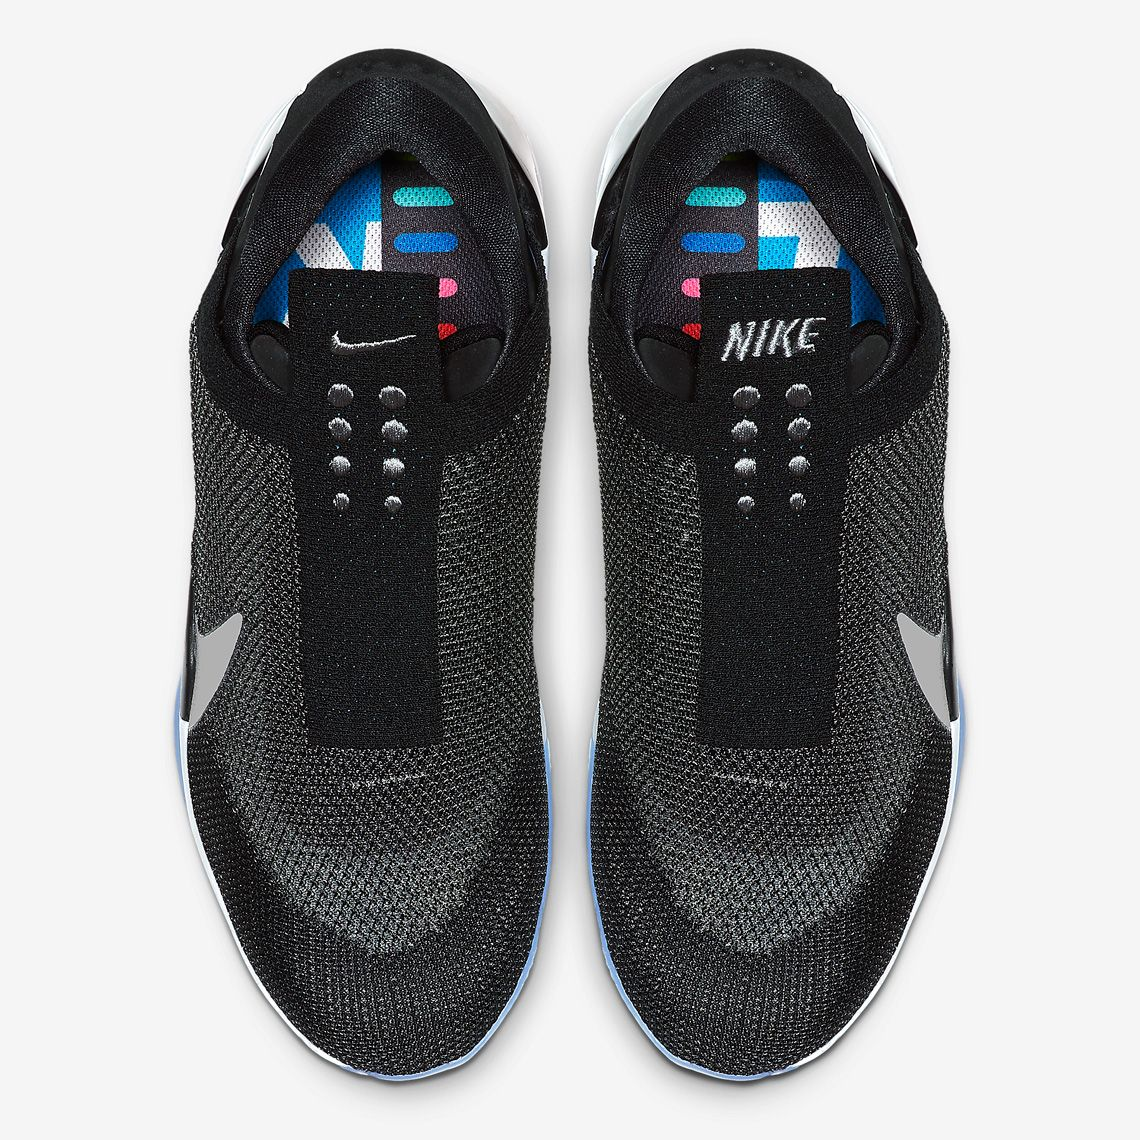 new nike bb shoes